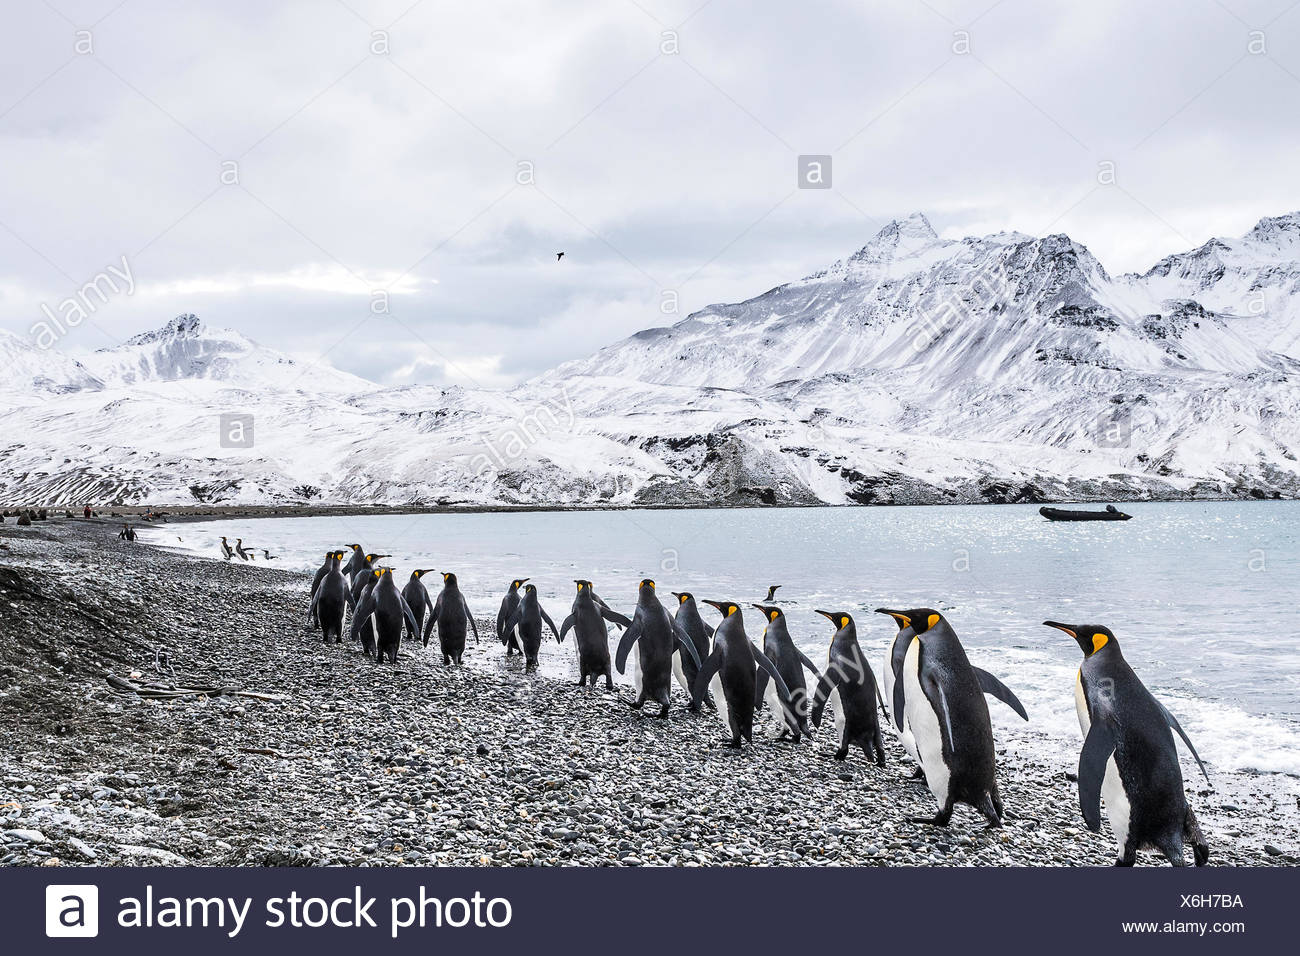 King penguins (Aptenodytes patagonicus) walking in a row along the water's edge and a zodiac moored in the water along the coast - Stock Image